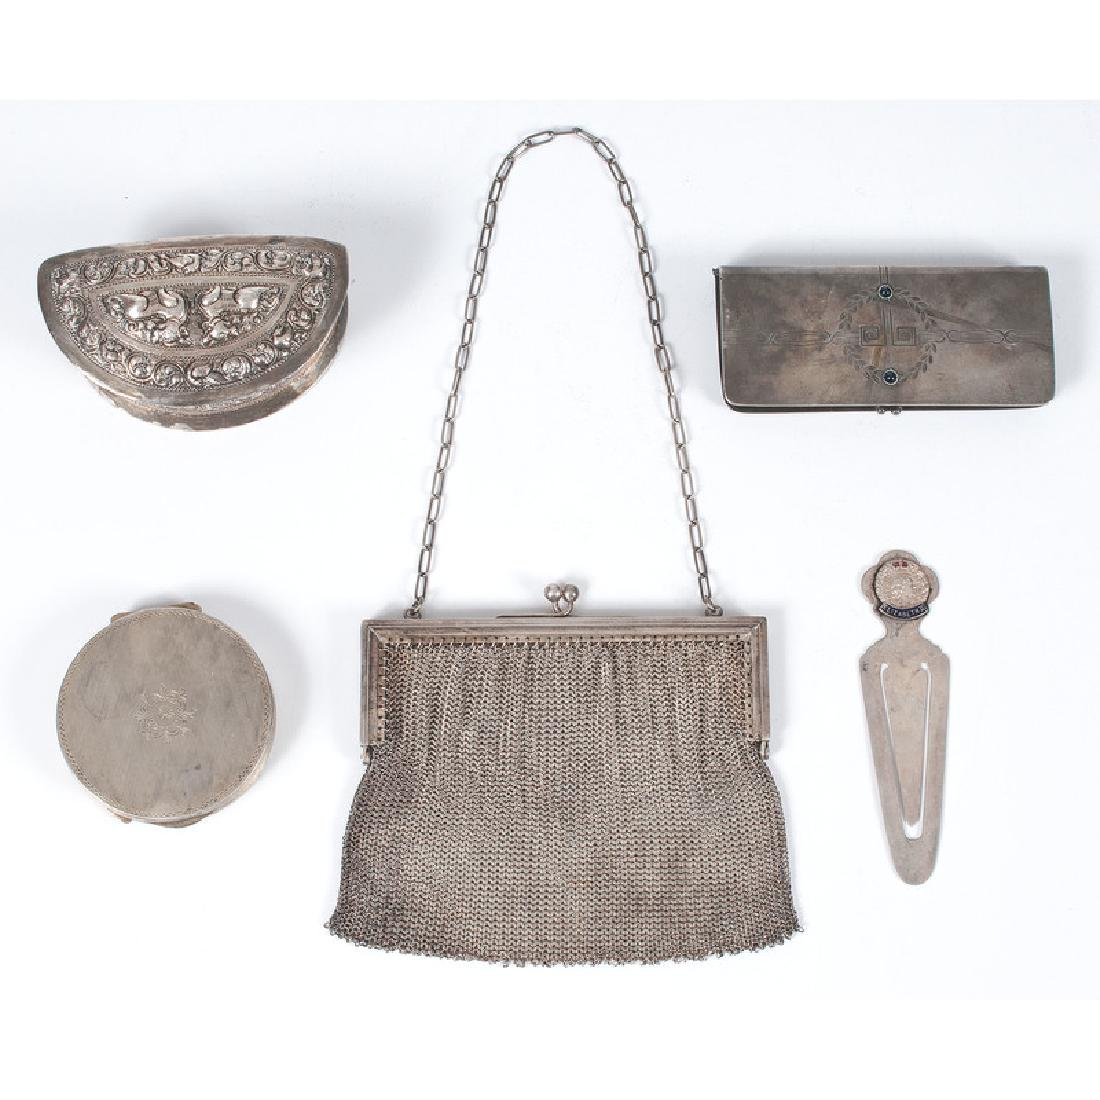 Sterling Mounted Purse and Other Accessories